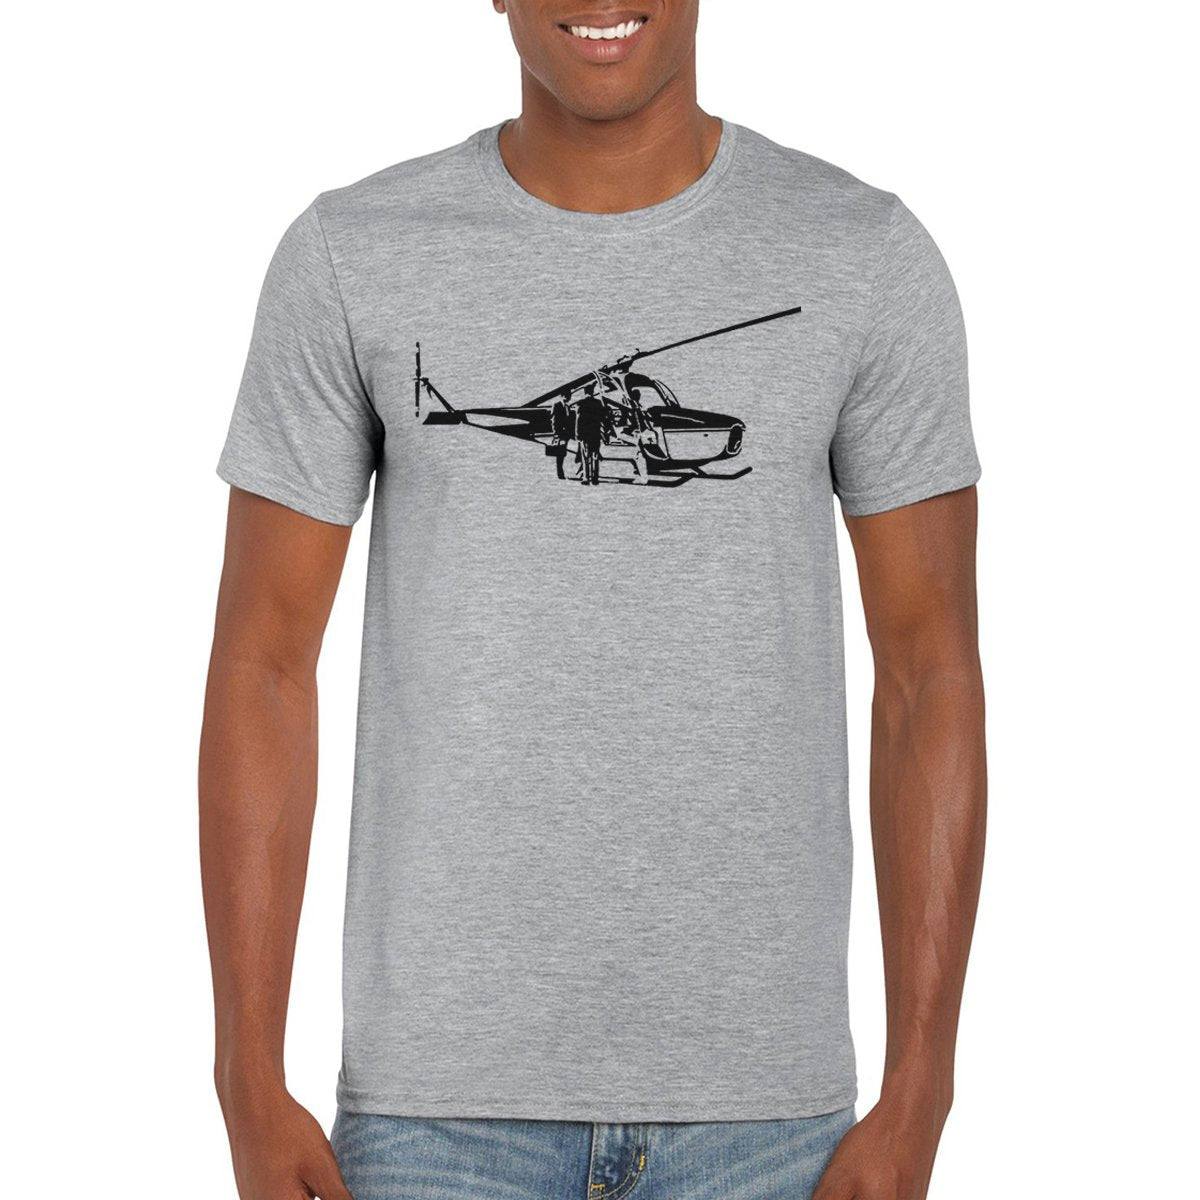 CH-1 SKYHOOK Helicopter T-Shirt